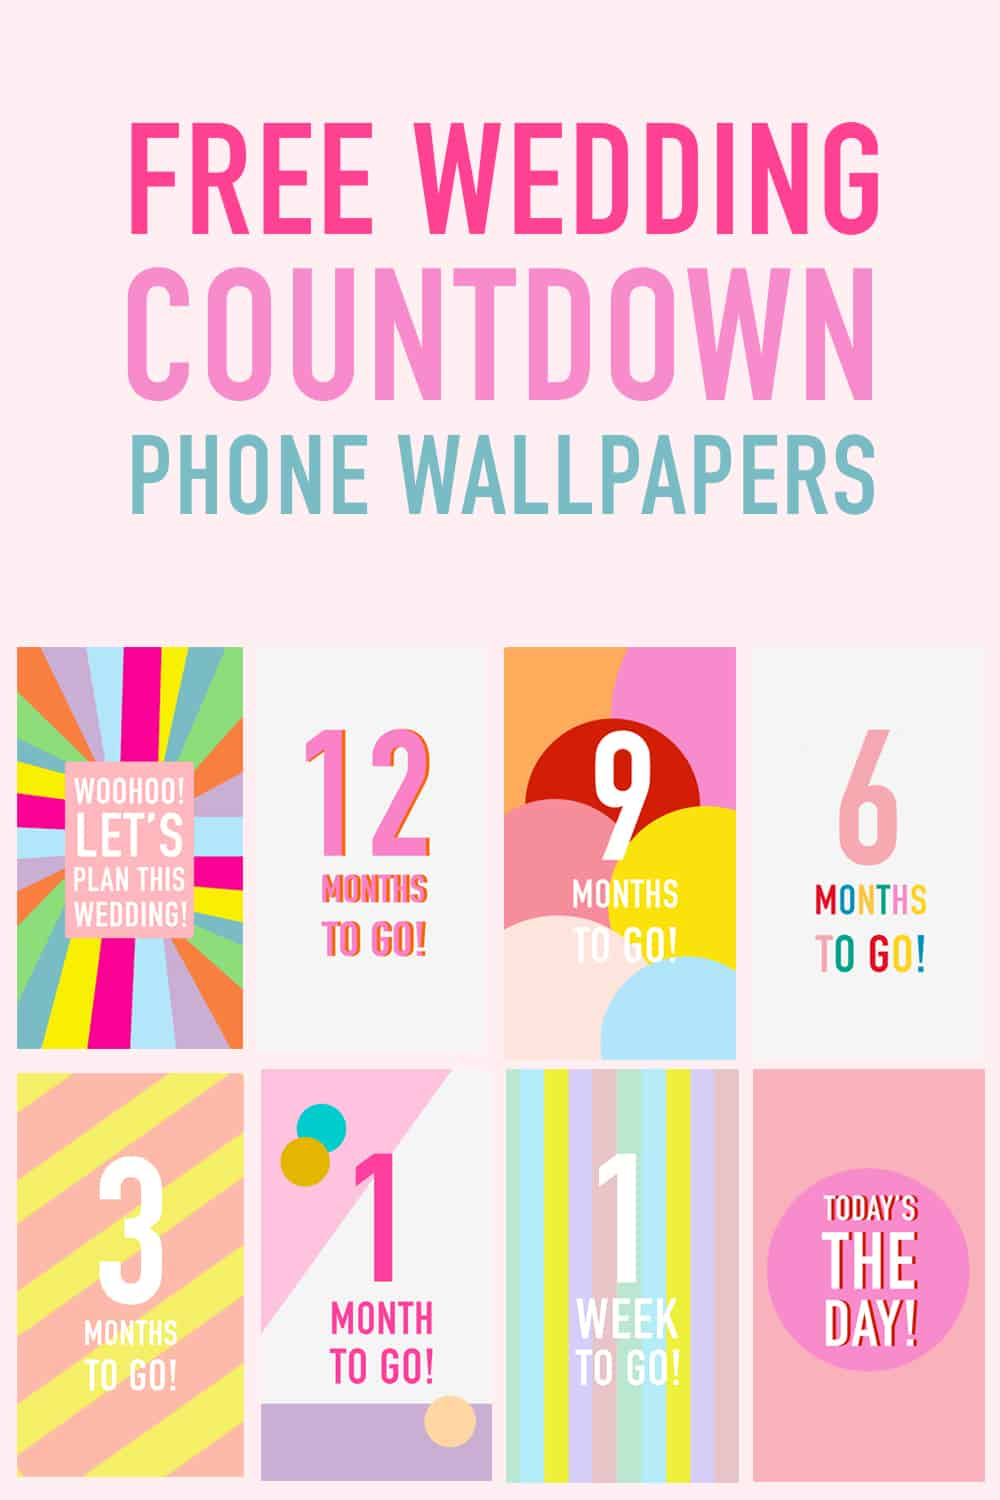 Download These Free Phone Wallpapers To Countdown Your Wedding